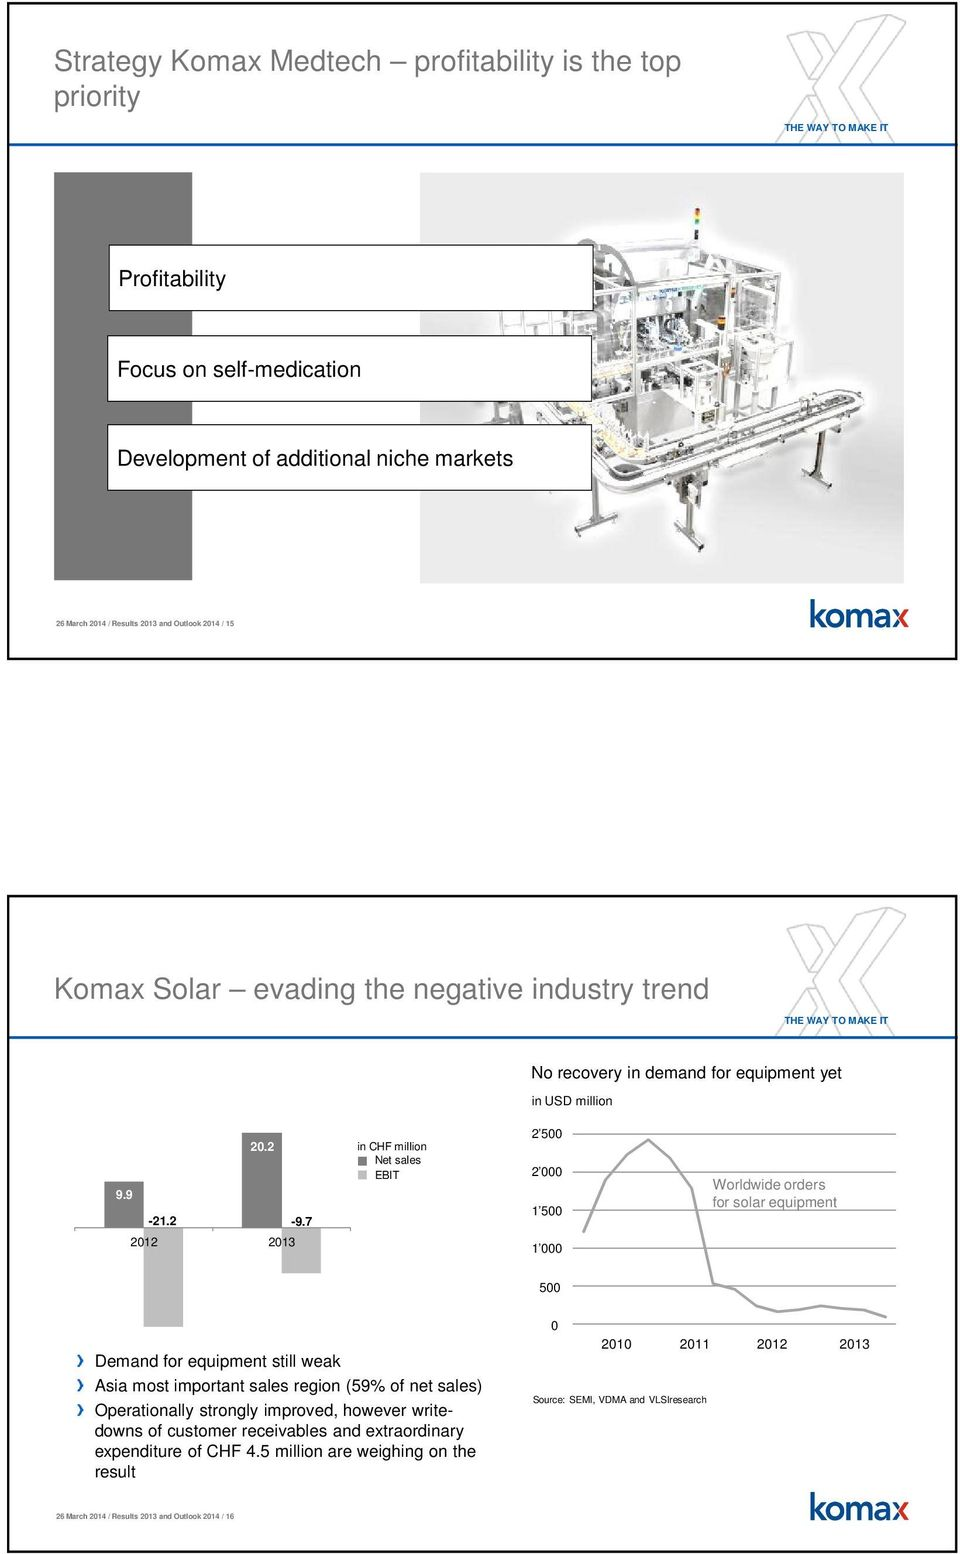 7 Net sales EBIT 2 500 2 000 1 500 Worldwide orders for solar equipment 2012 2013 1 000 500 Demand for equipment still weak Asia most important sales region (59% of net sales)